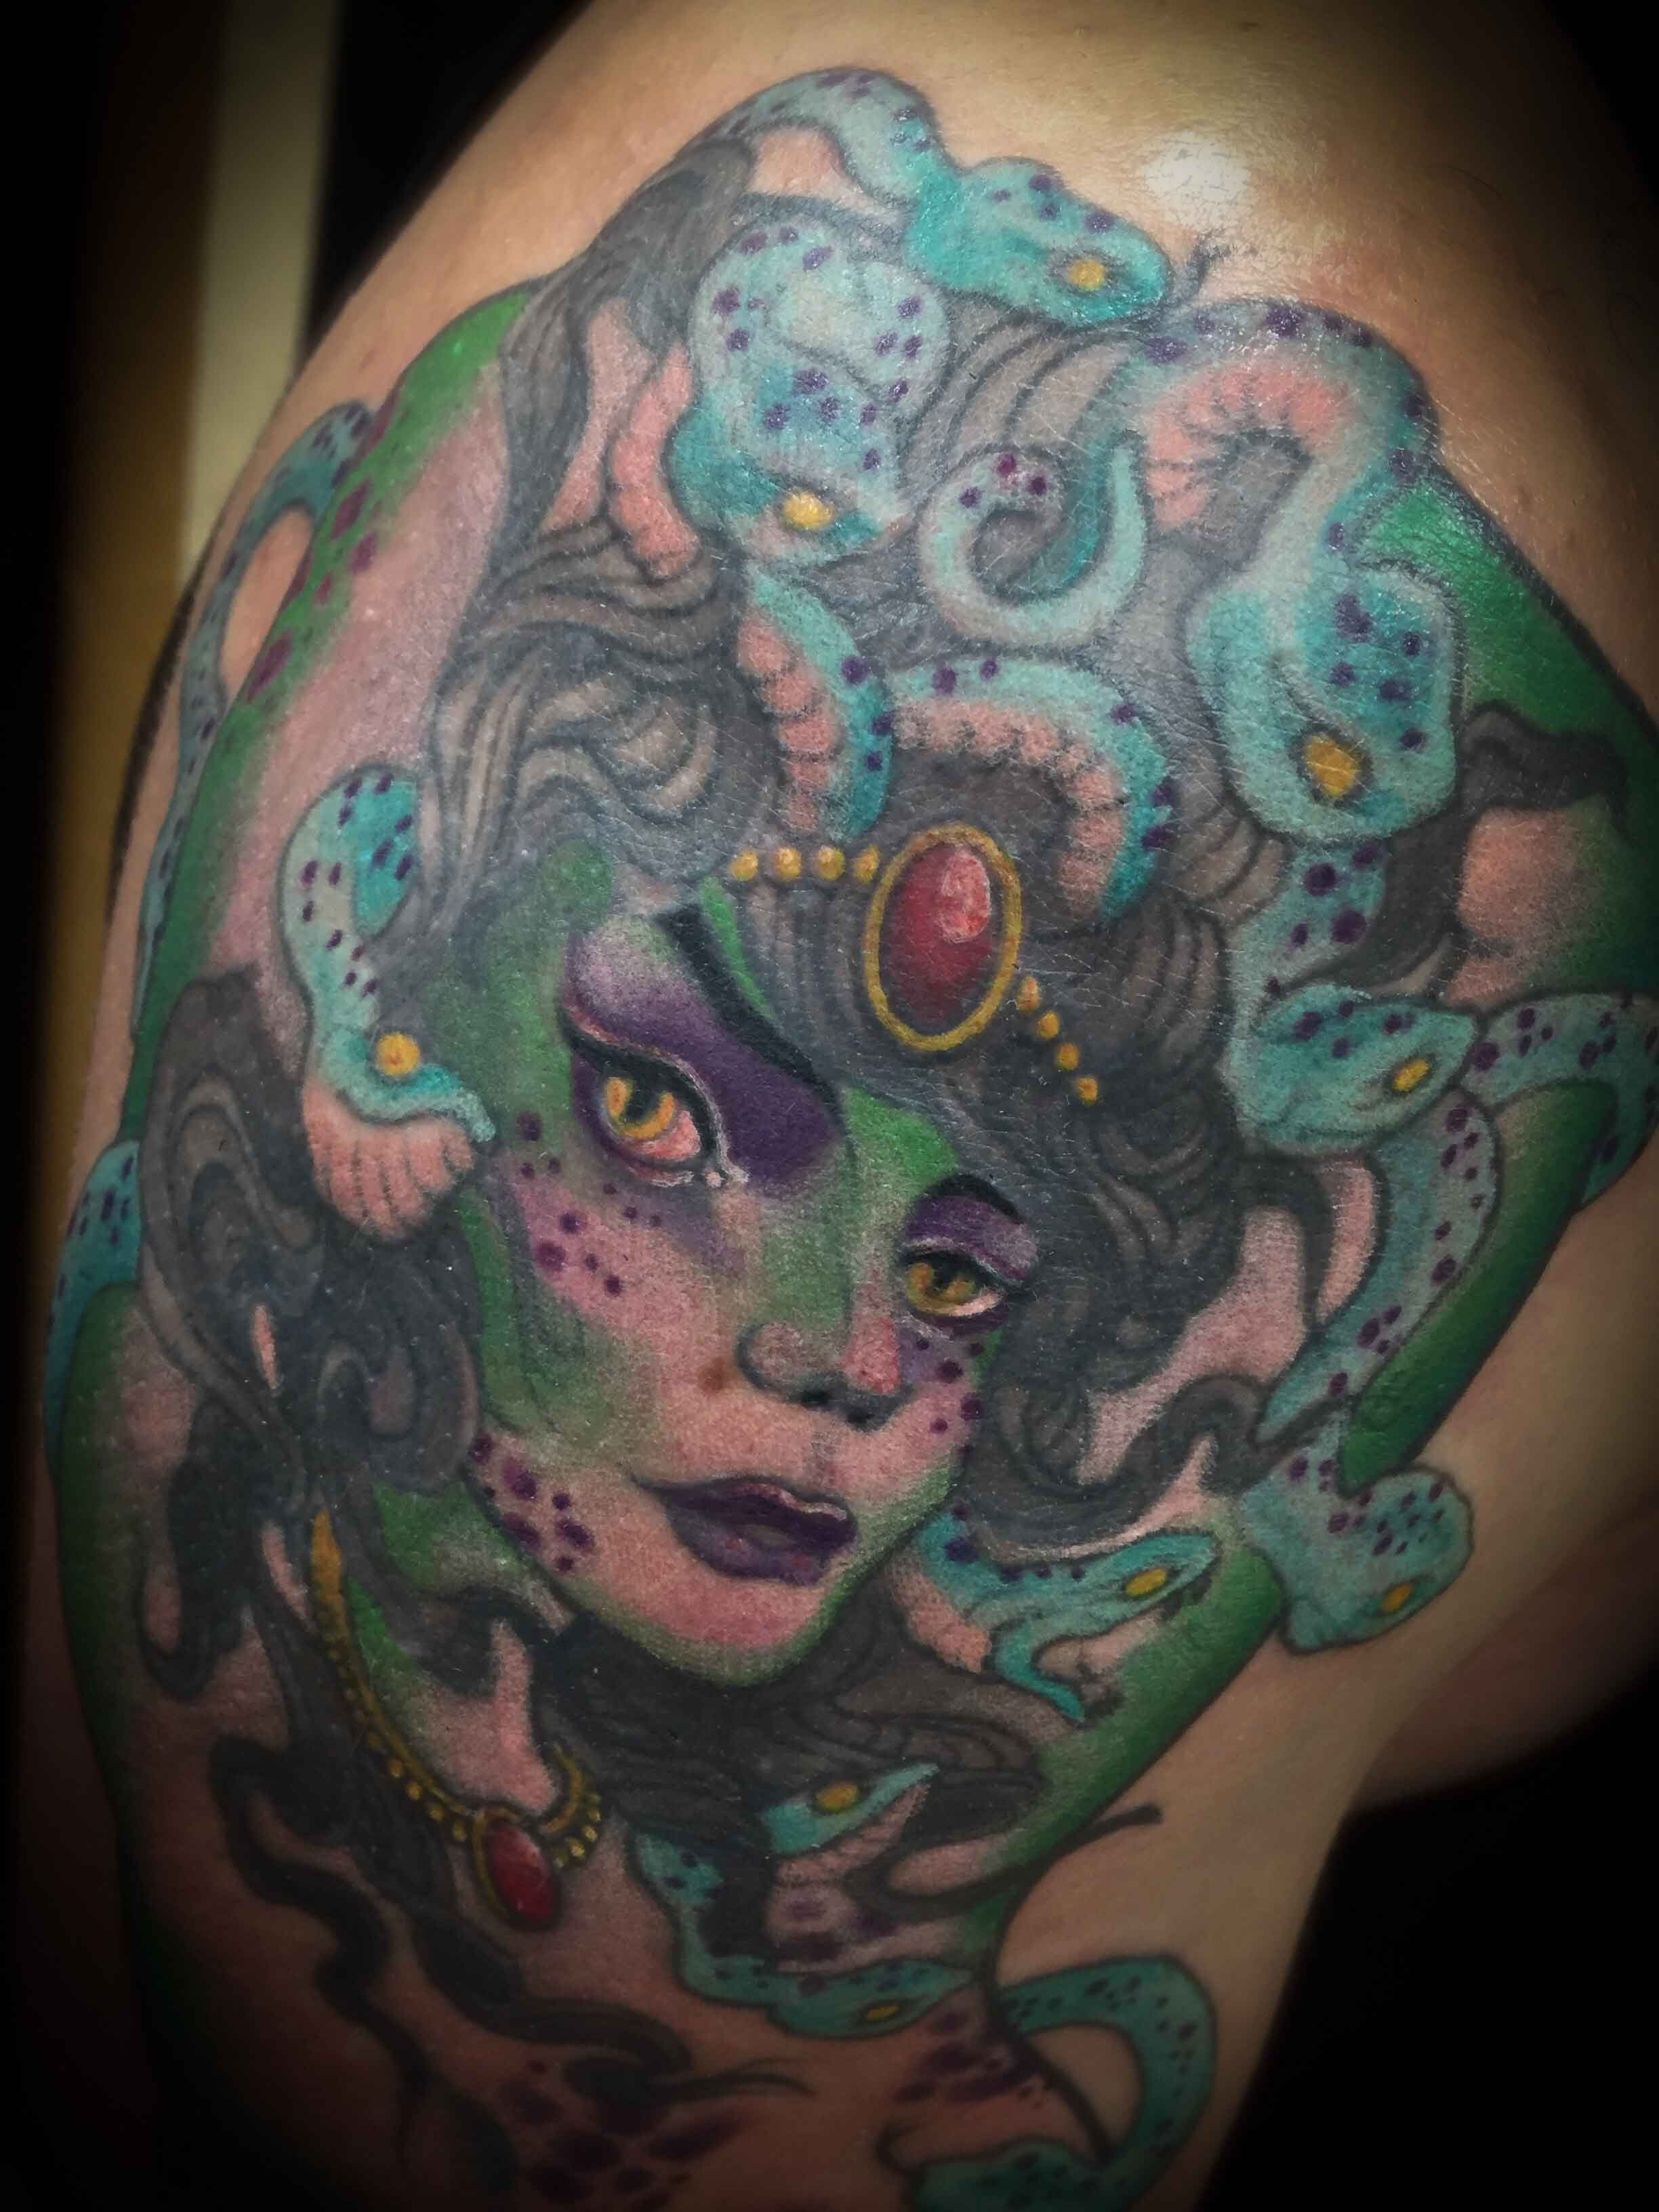 medusa-head-tattoo-in-color-by-by-resident-Funhouse-Tattoo-artist-Leo-Cadanezzi-in-San-Diego